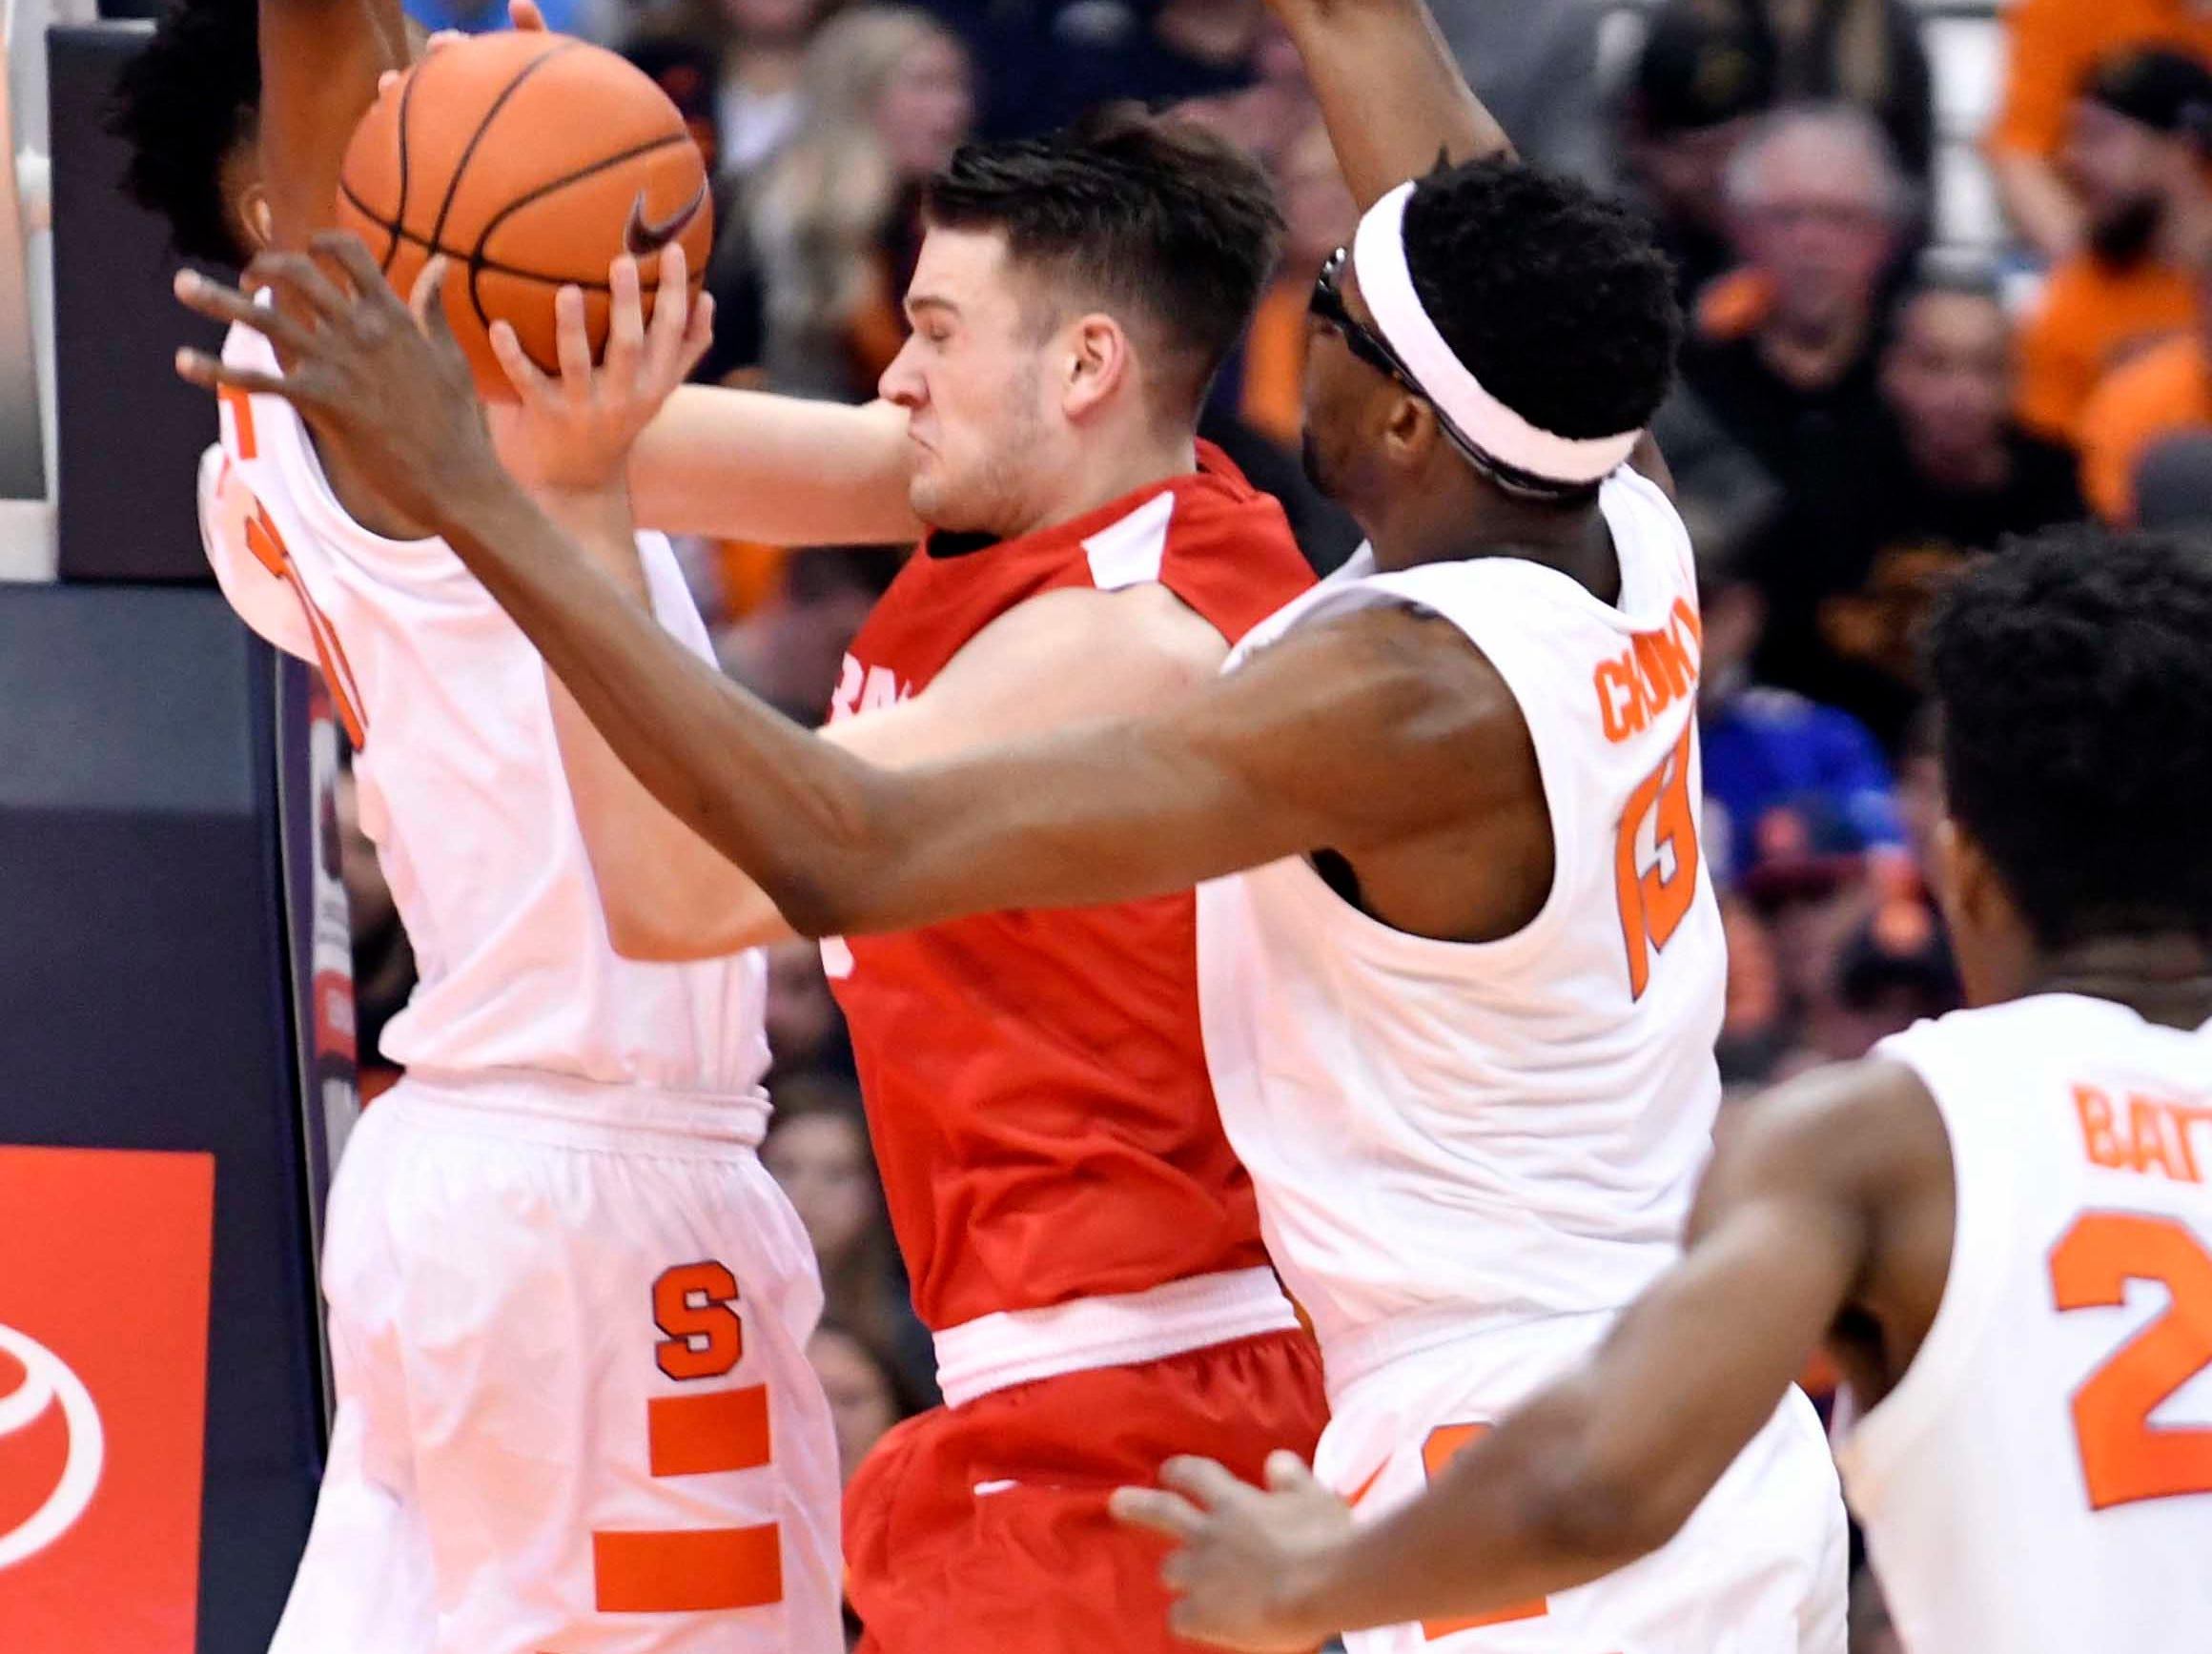 Dec 1, 2018; Syracuse, NY, USA; Cornell Big Red forward Jimmy Boeheim is squeezed between Syracuse Orange forward Oshae Brissett (11) and center Paschal Chukwu (13) on a shot during the second half at the Carrier Dome. Mandatory Credit: Mark Konezny-USA TODAY Sports